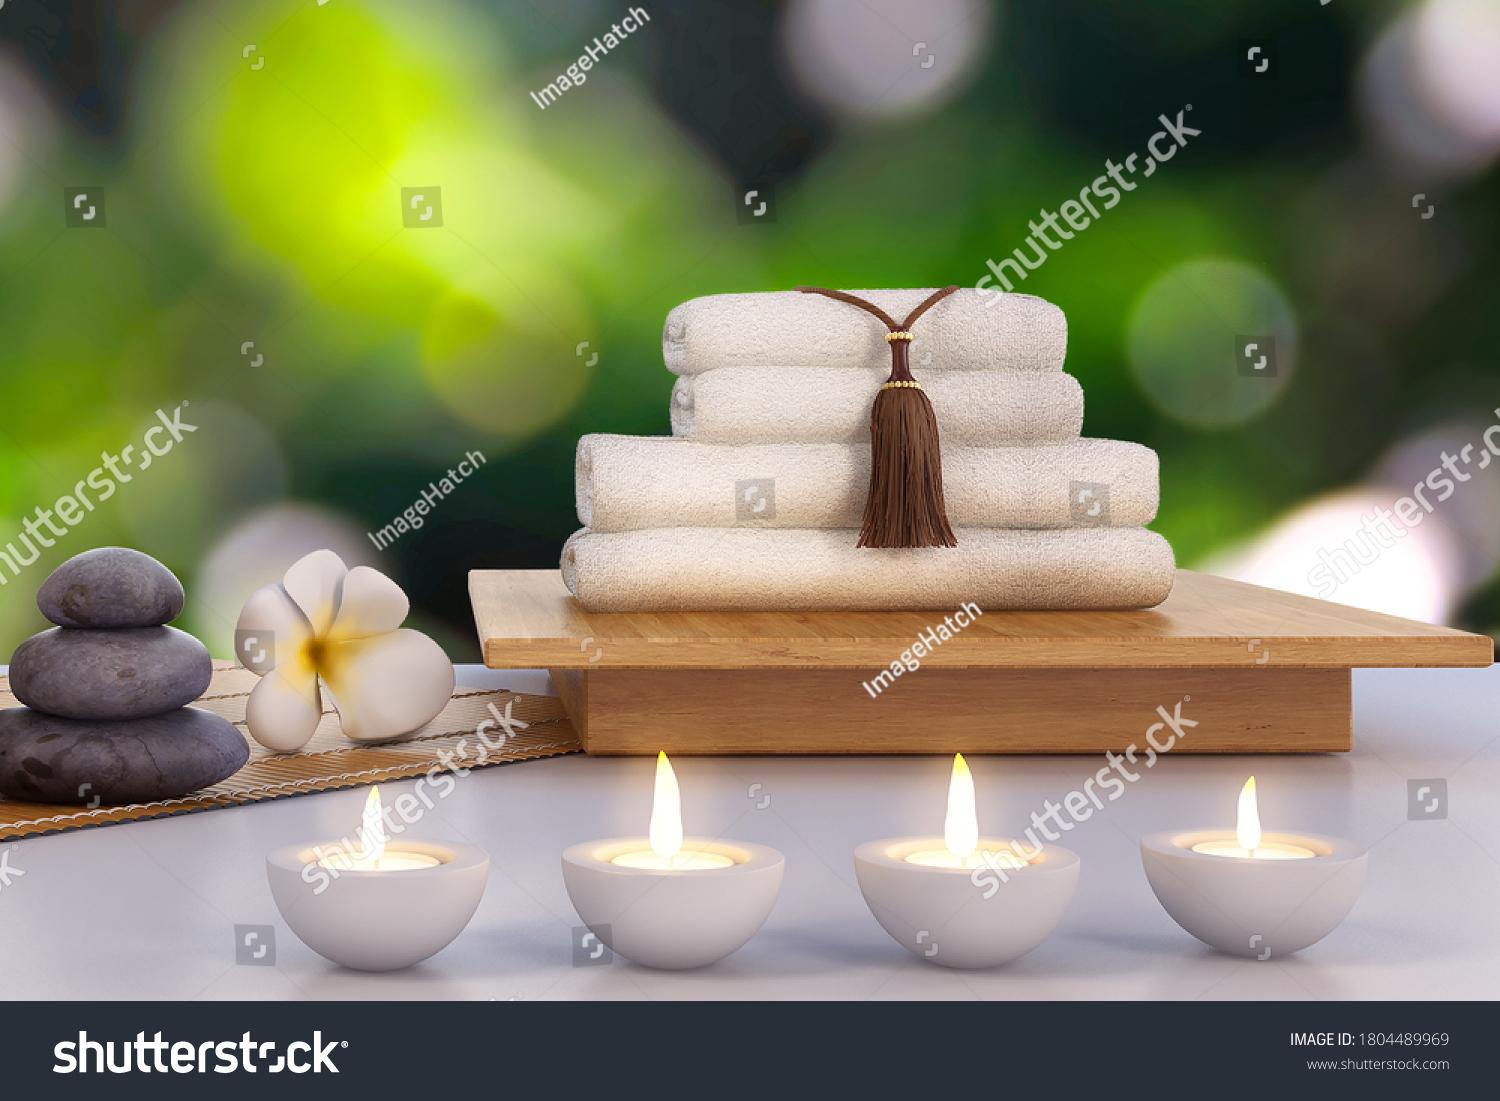 stock-photo-spa-set-with-massage-zen-sto